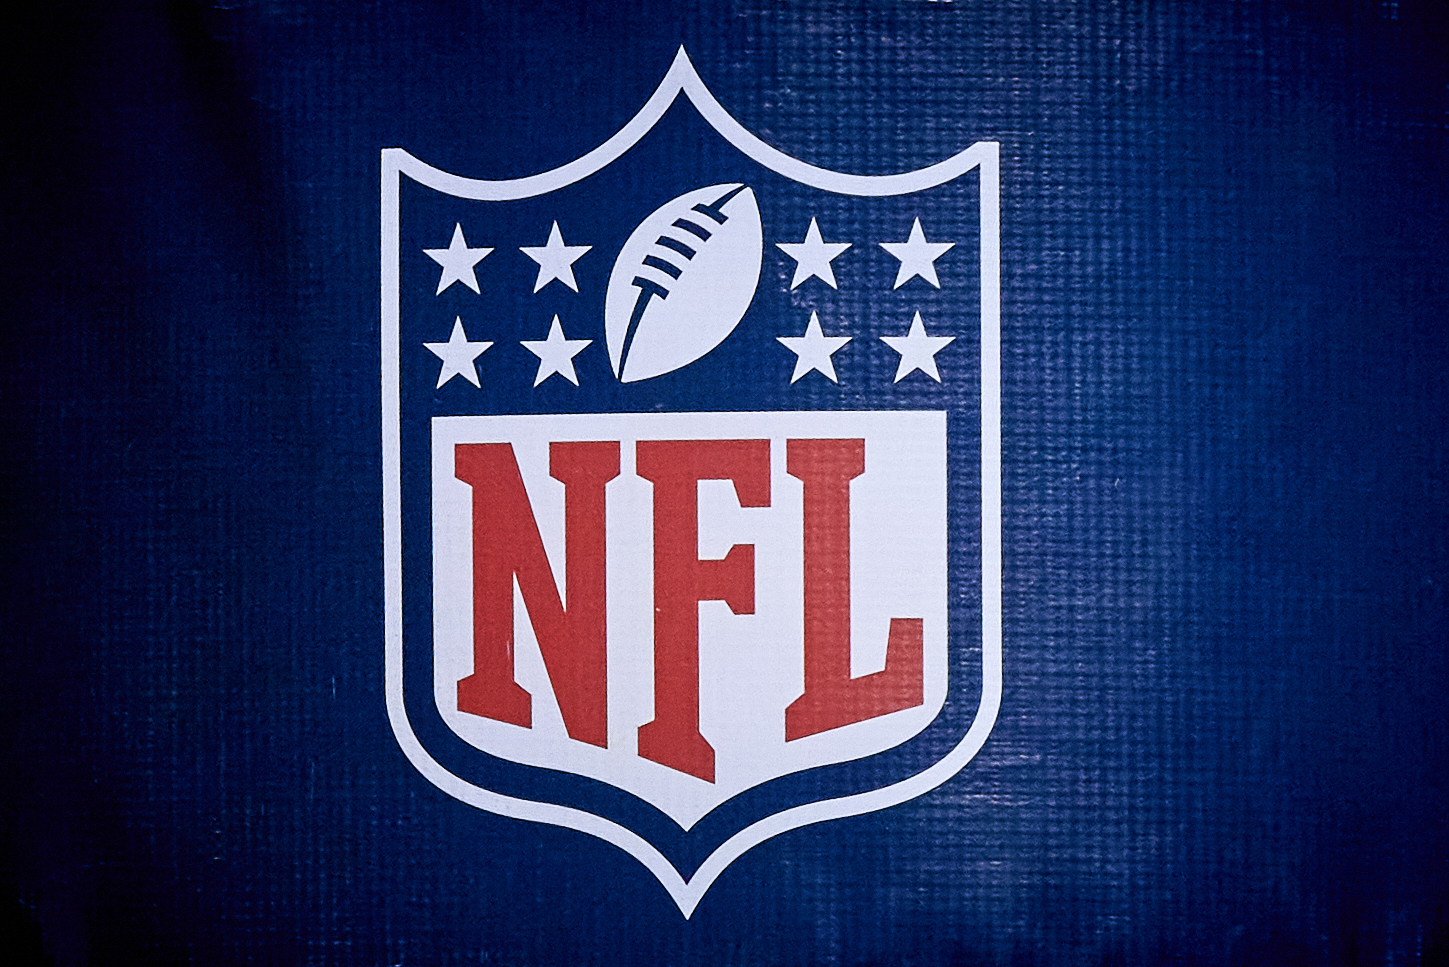 A detailed view of the NFL crest logo is seen on a goal post pad in action during a game between the Chicago Bears and the Green Bay Packers on January 03, 2021 at Soldier Field in Chicago, IL.